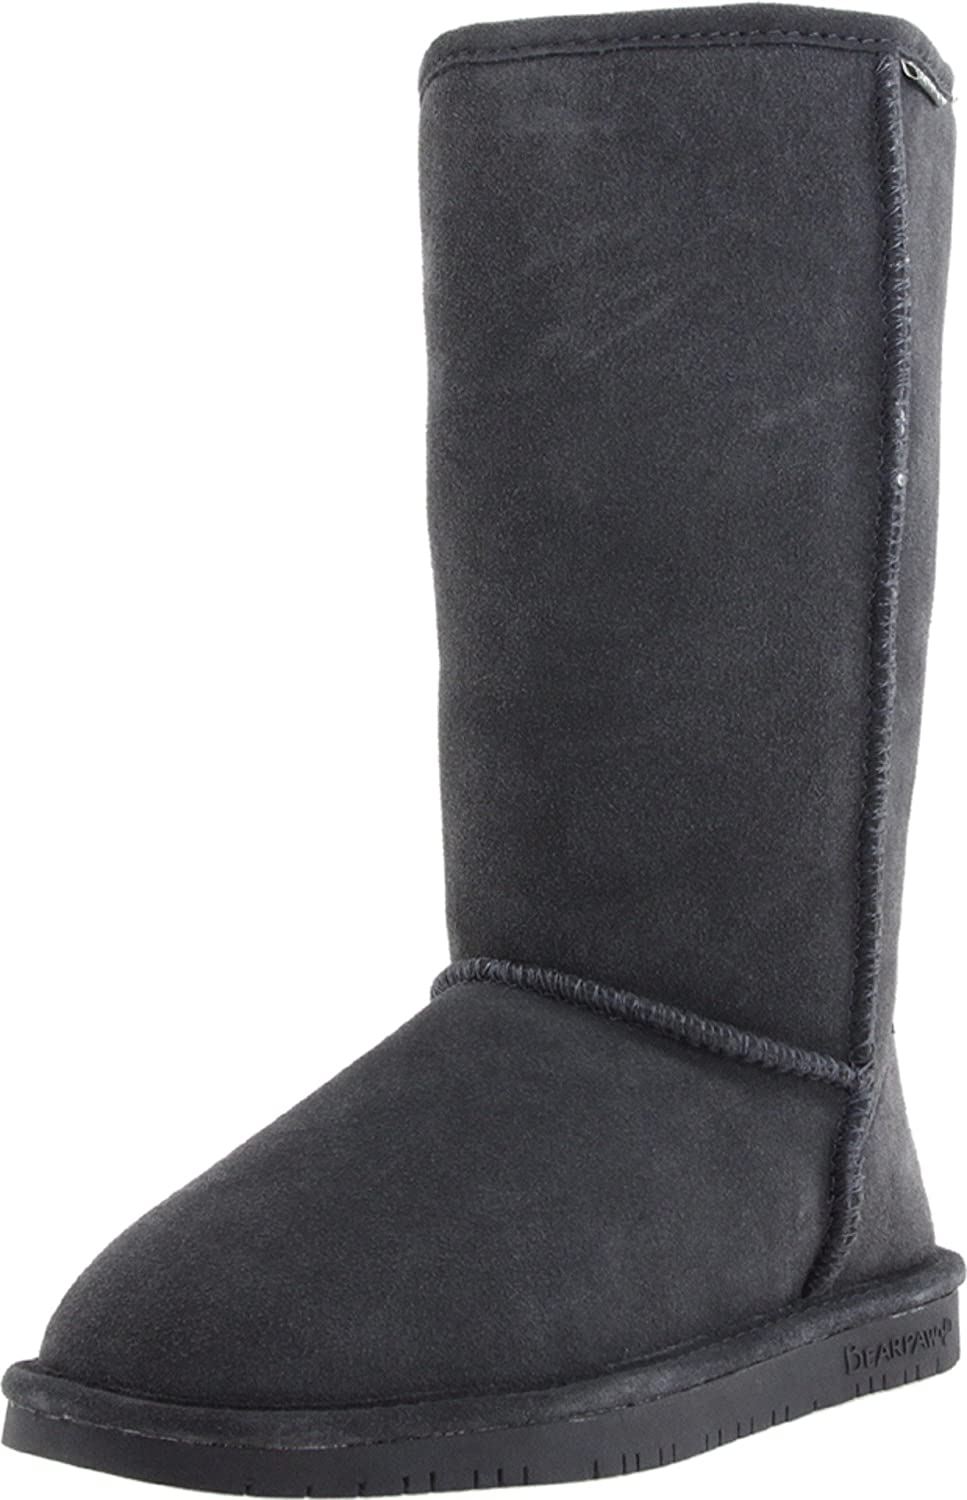 BEARPAW Women's Emma Tall 612-W Boot цены онлайн